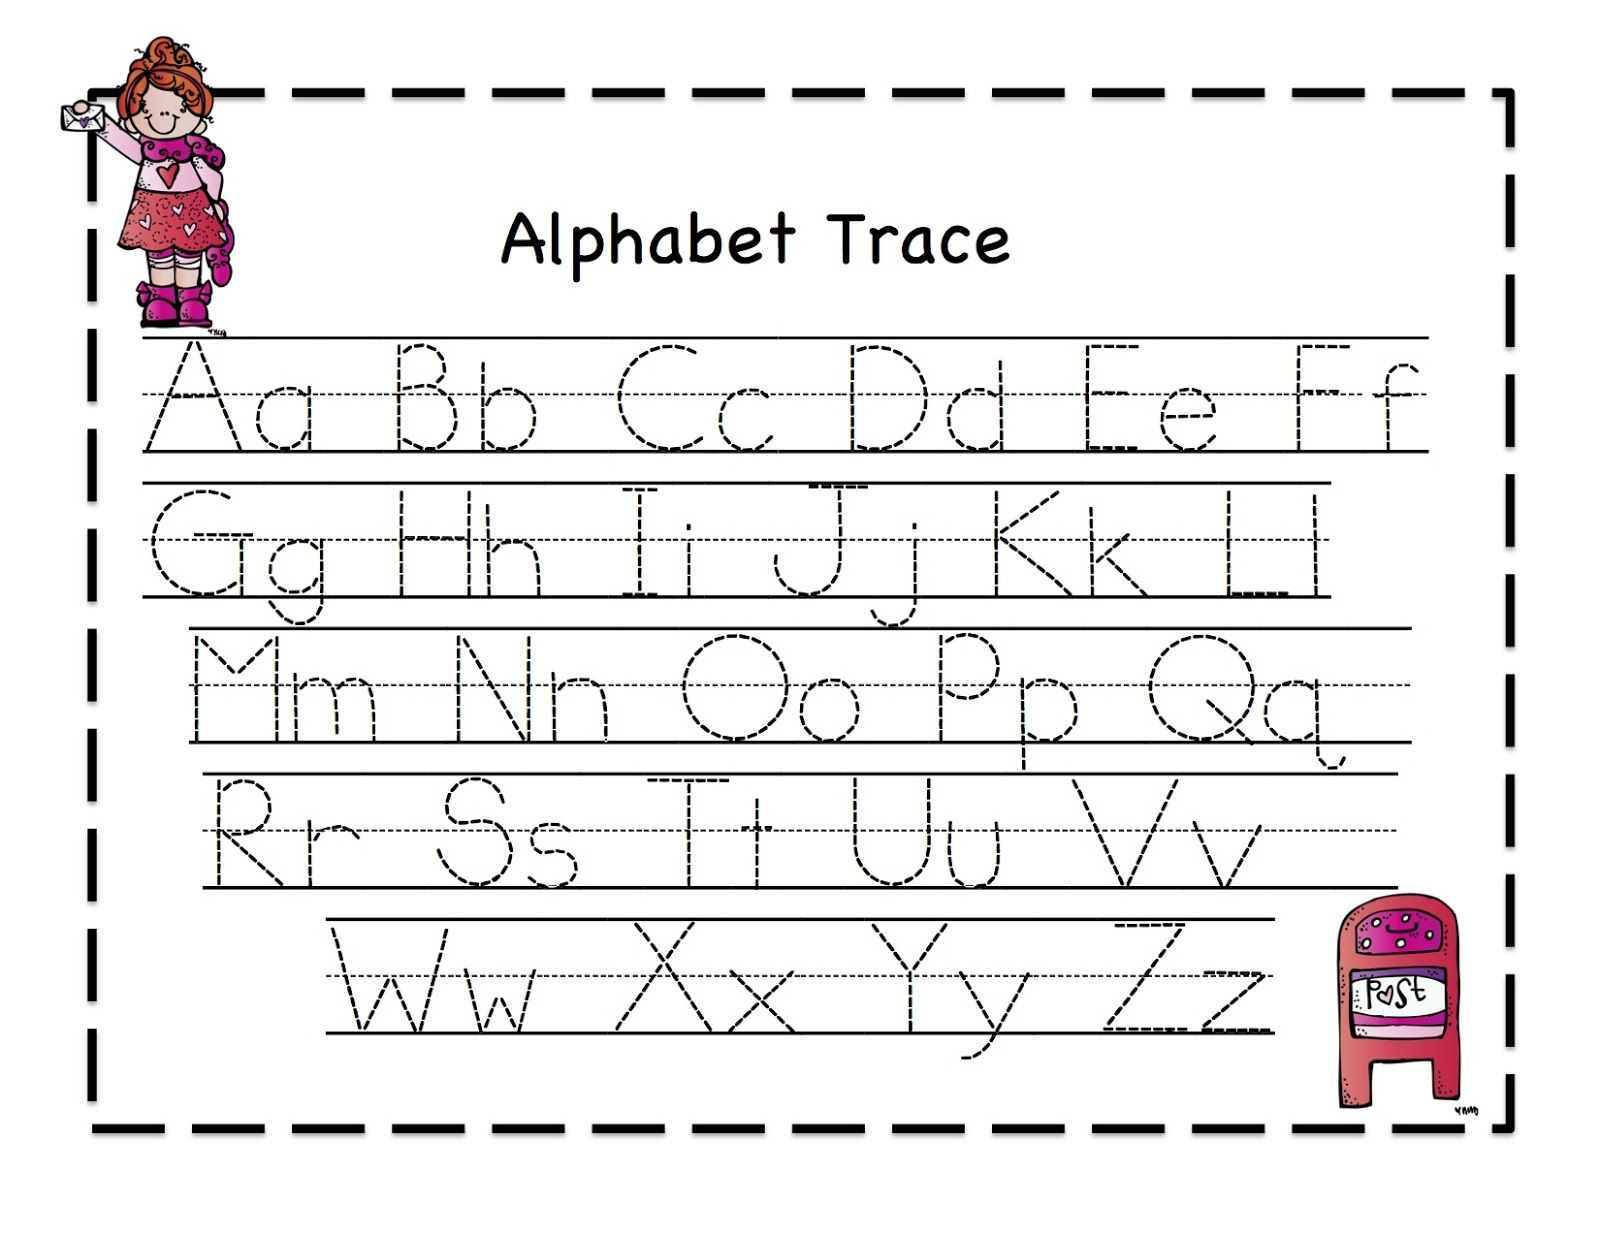 worksheet Alphabet Tracing Worksheet alphabet tracing worksheets pdf delibertad printables free printable letter gozoneguide thousands